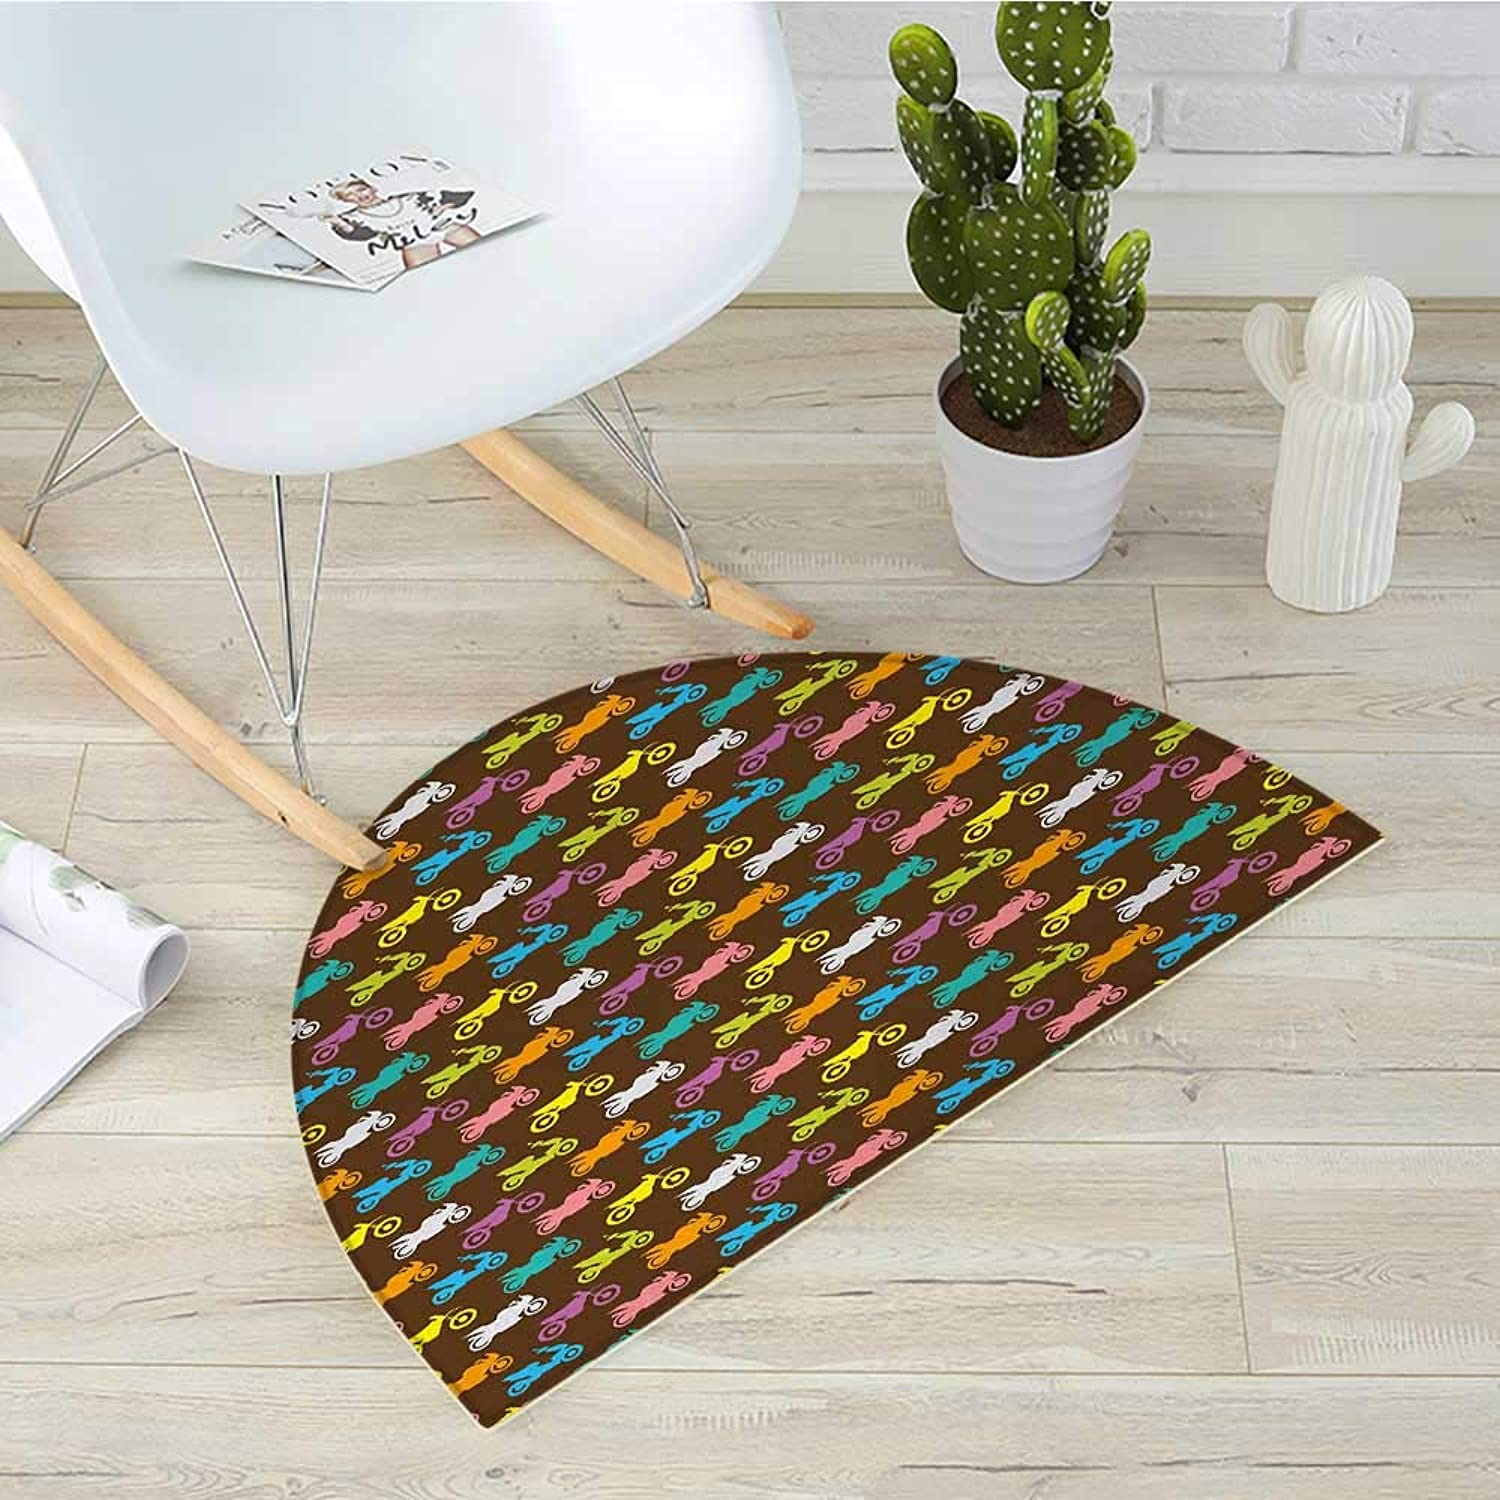 Motorcycle Semicircle Doormat colorful Silhouettes of Different Motorcycles Retro Style on Brown Background Halfmoon doormats H 39.3  xD 59  Multicolor